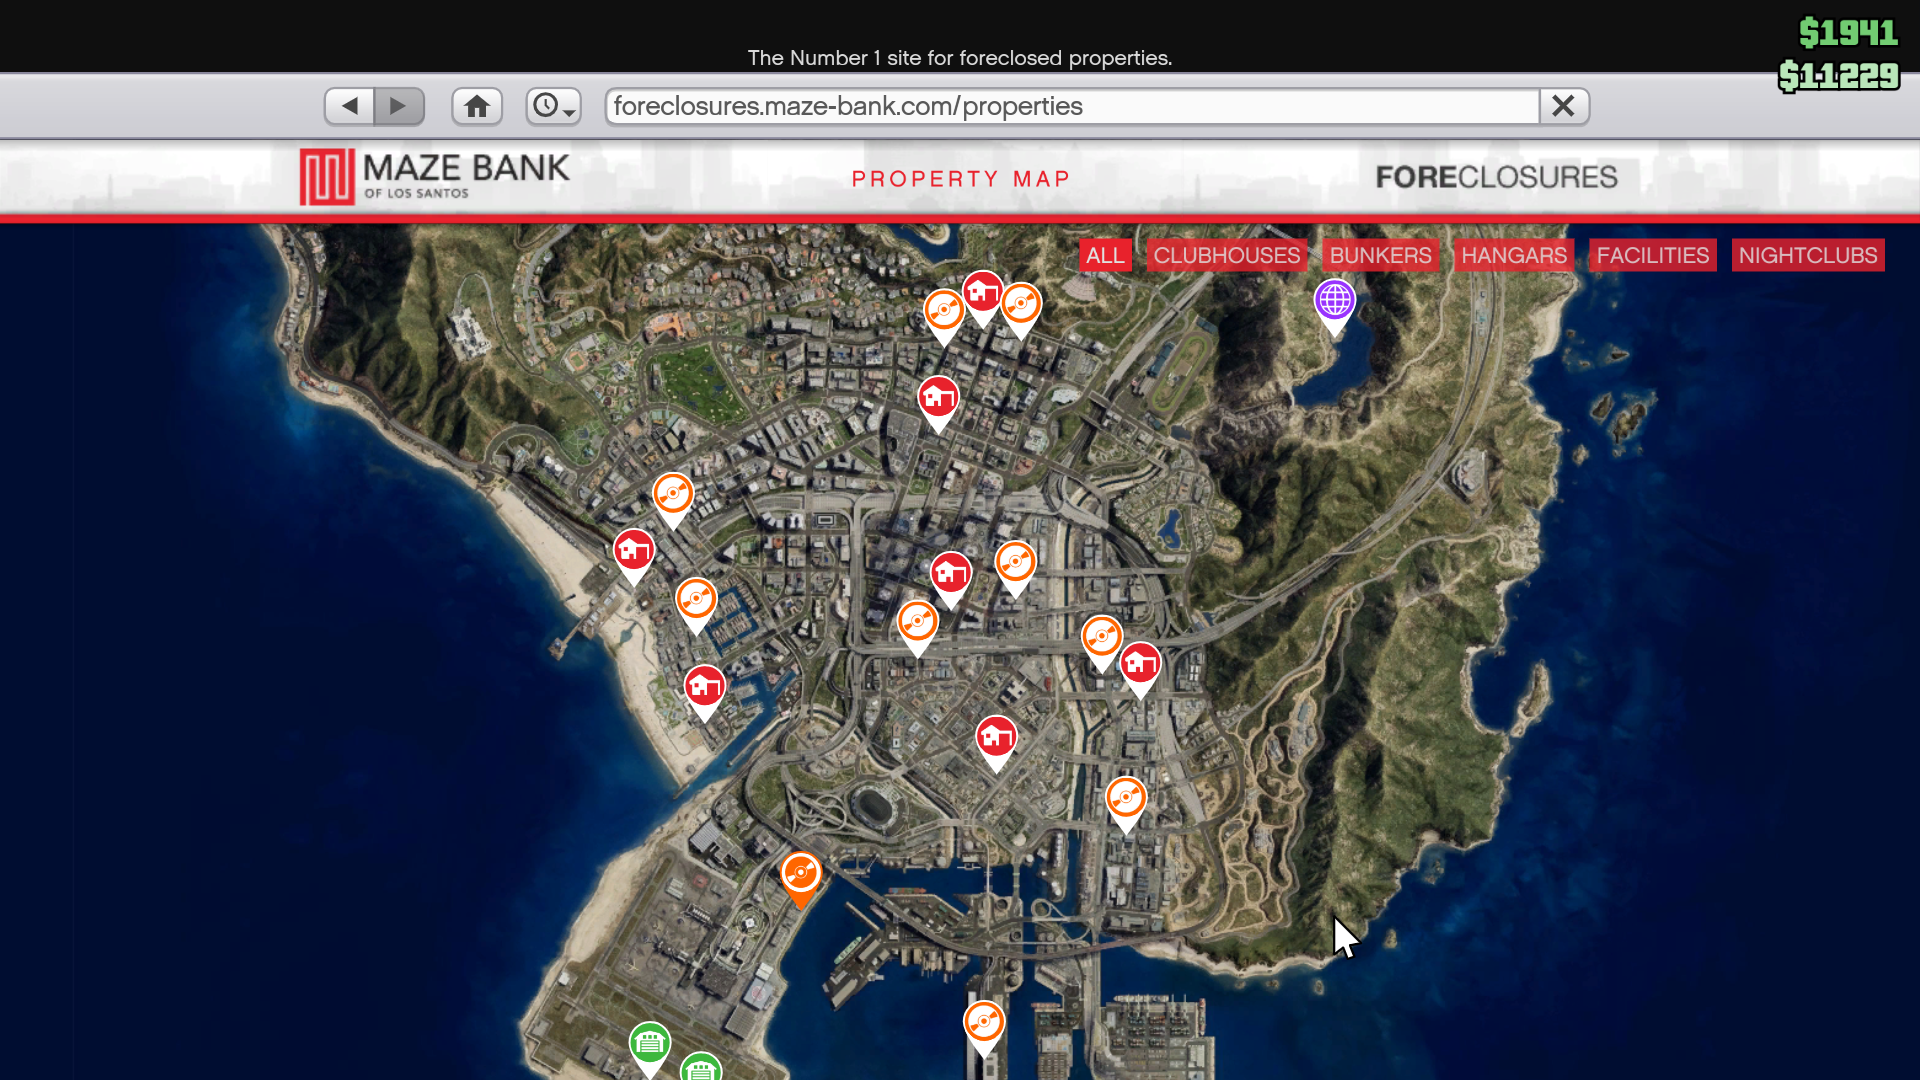 Gta5 Karte.Every Nightclub Location Price In Grand Theft Auto Online After Hours